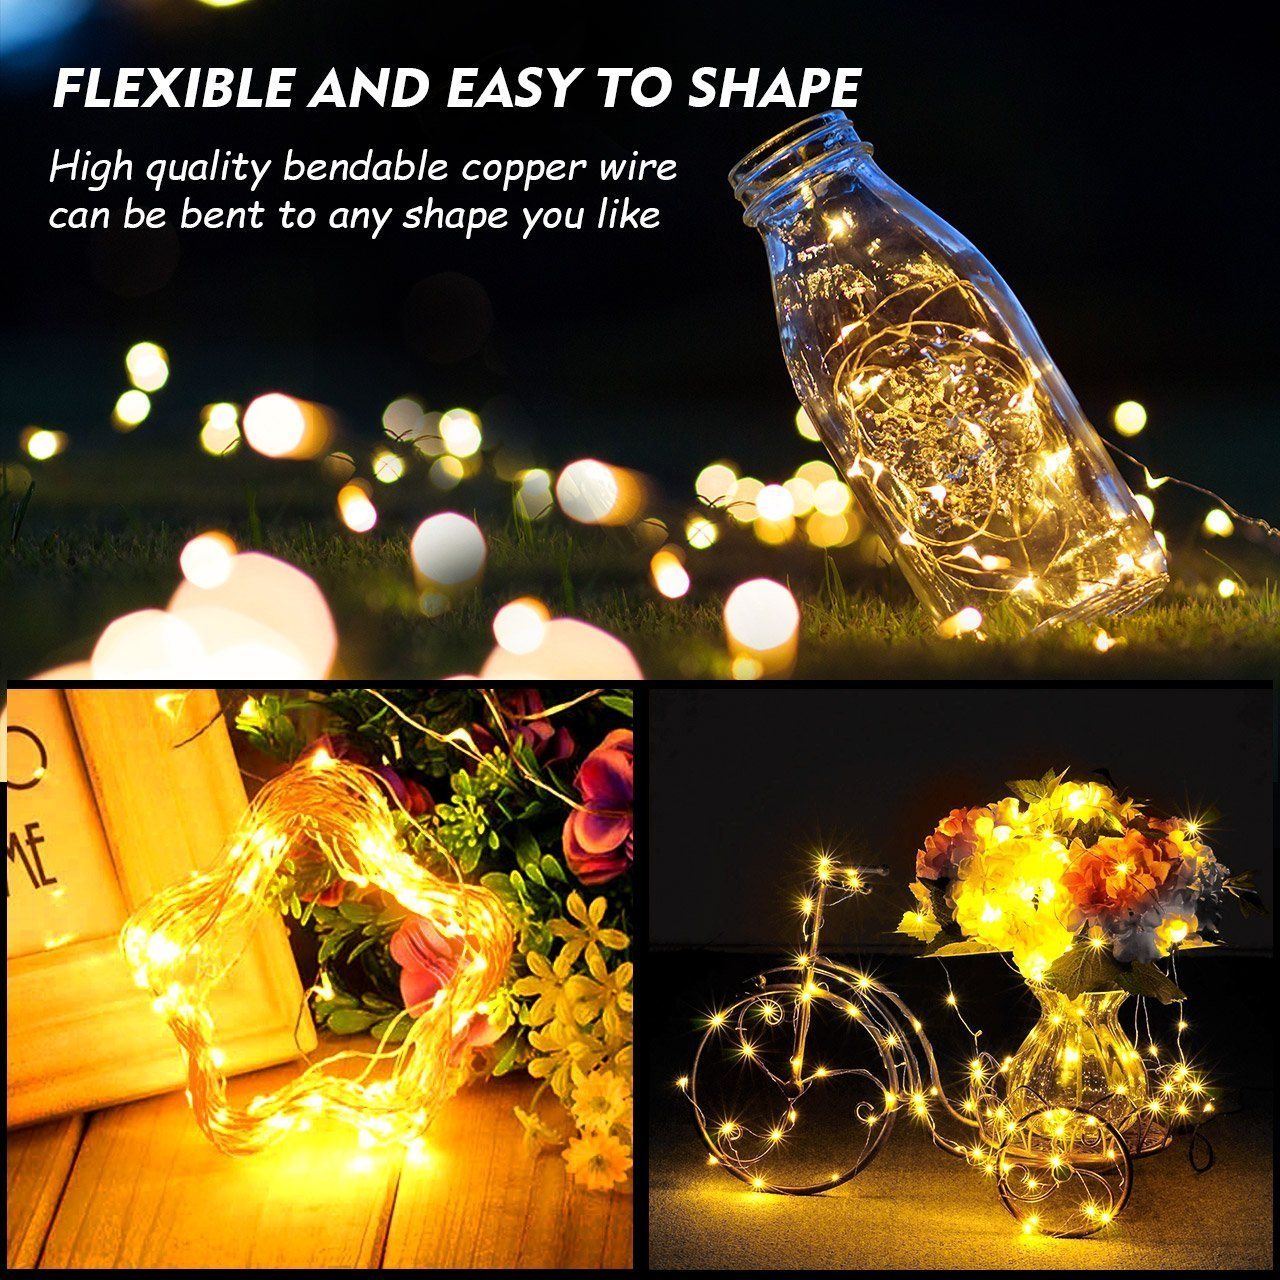 WJZXTEK 2 Pack LED String Lights, Dimmable with Remote Control Battery Powered 8 Modes Copper Wire Firefly Decorative Lights for Bedroom Wedding Festival Decor Parties 16.4ft 50 Led, Warm White